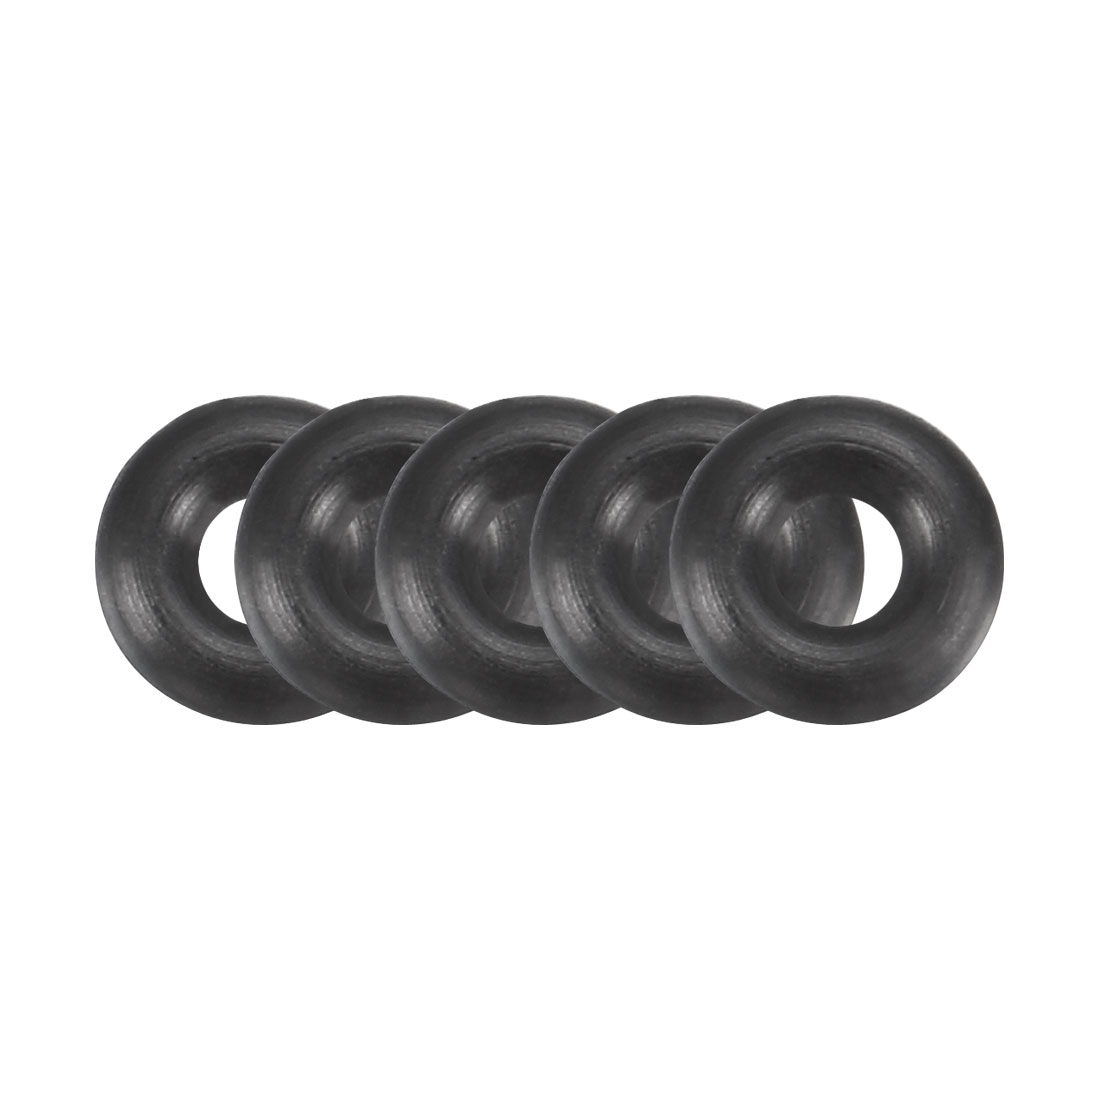 100 Pcs 6 x 2 x 2mm OD*ID*Height O Type Sealing Ring Black Rubber